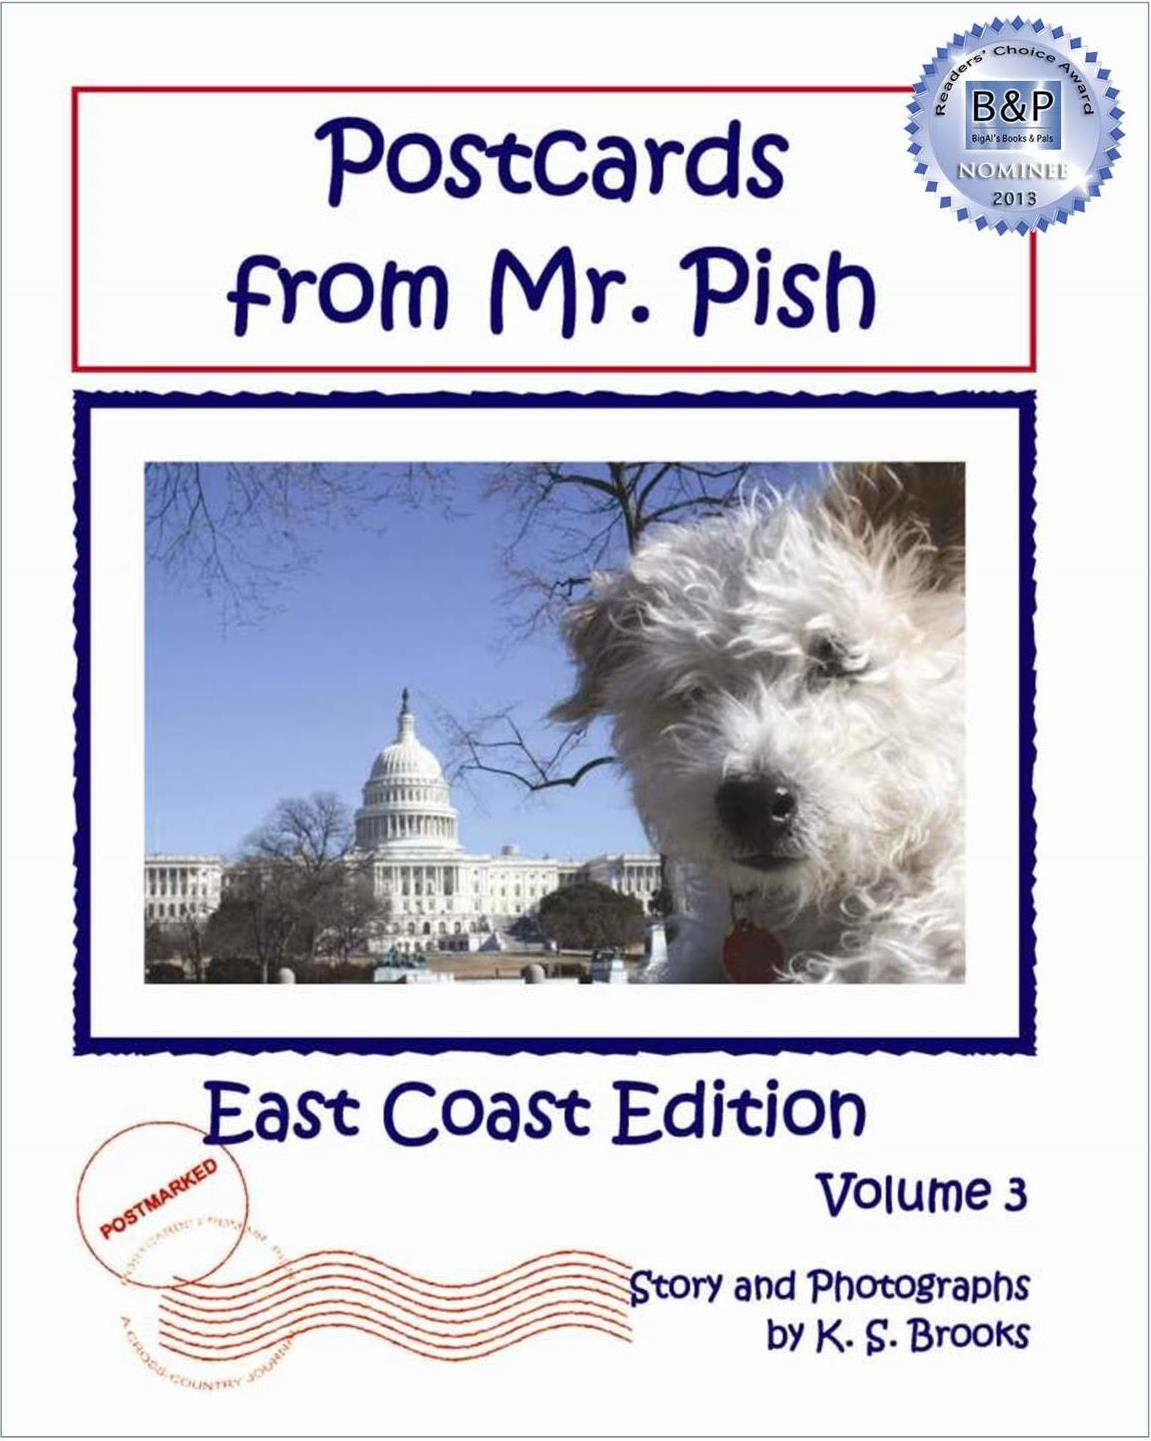 Postcards from Mr. Pish East Coast